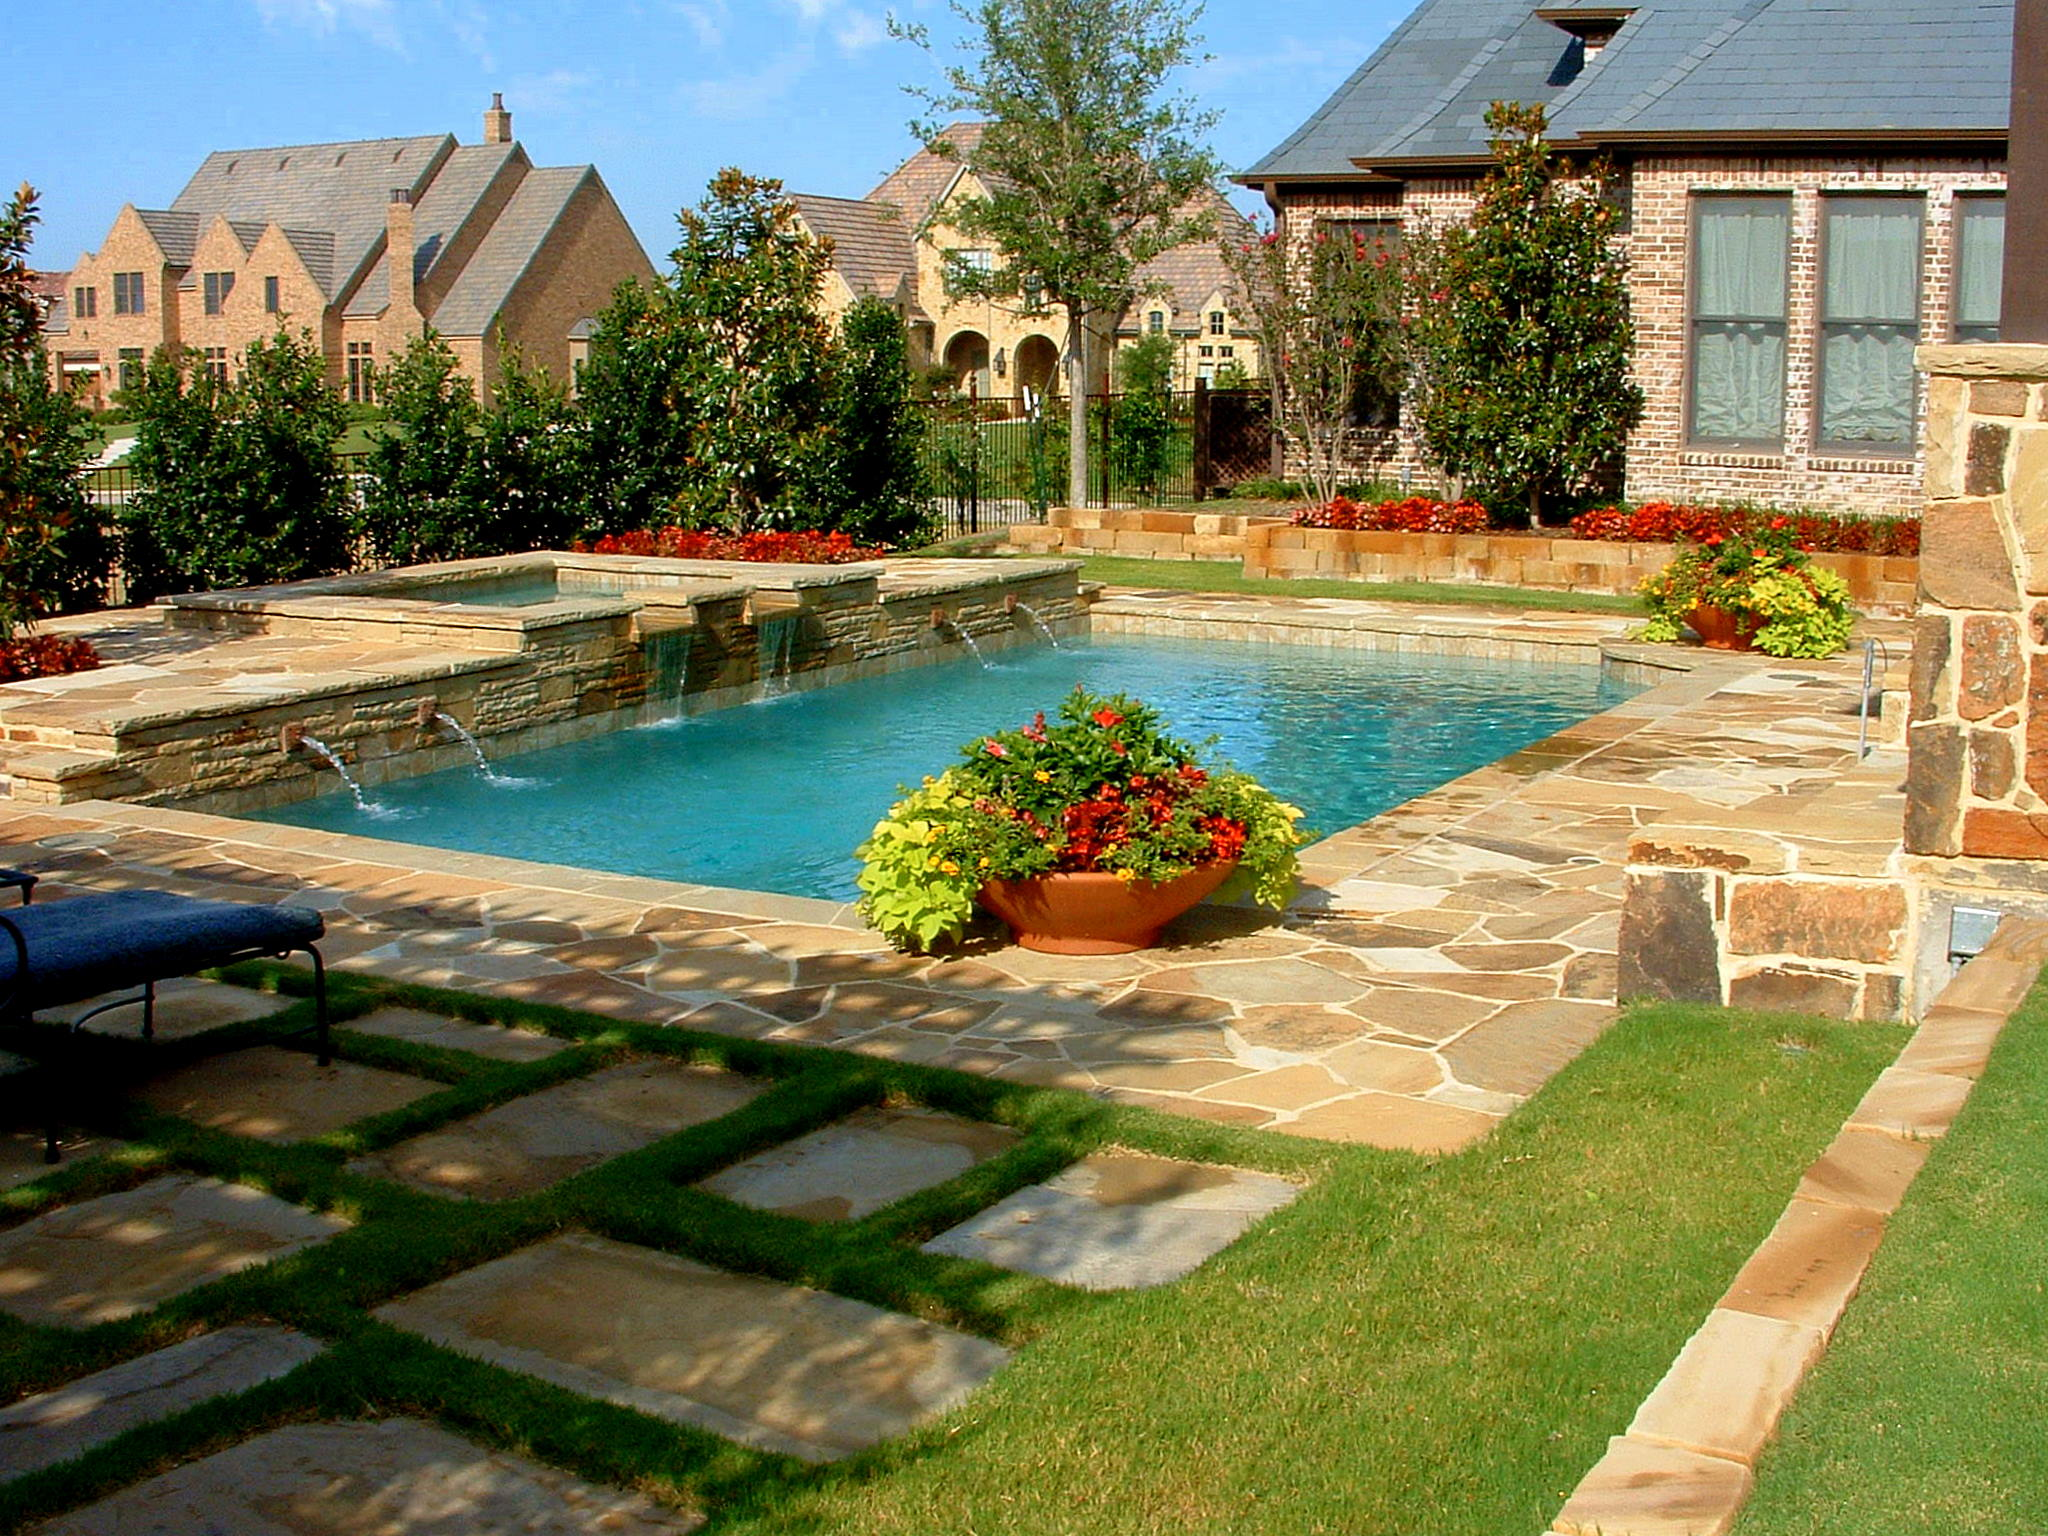 Backyard landscaping ideas swimming pool design for Garden near pool